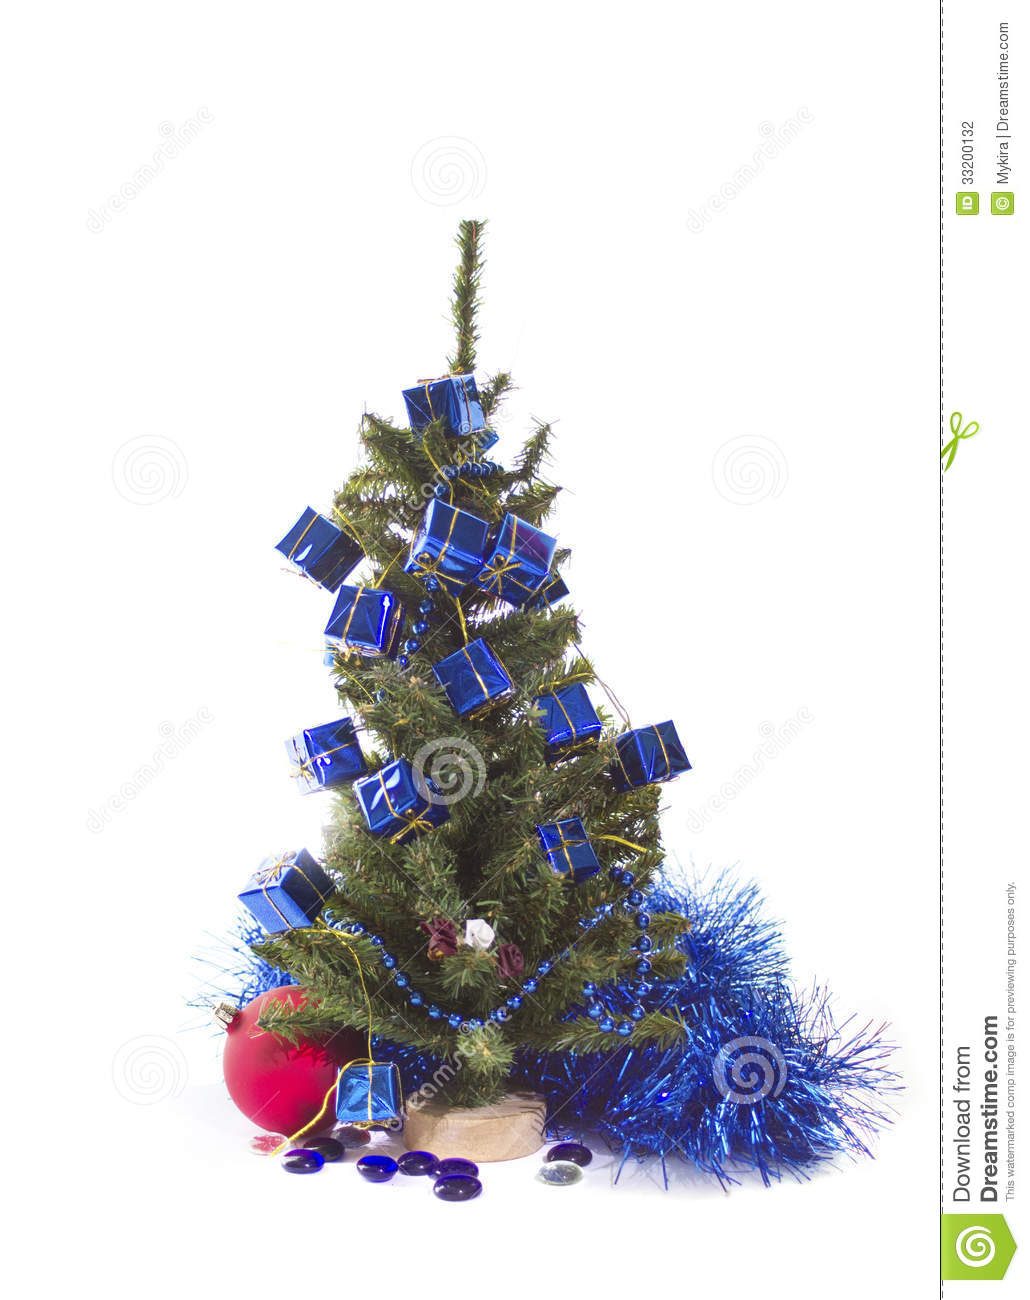 Christmas Tree With Blue And Red Decorations Stock Photo Image Of Event Greeting 33200132